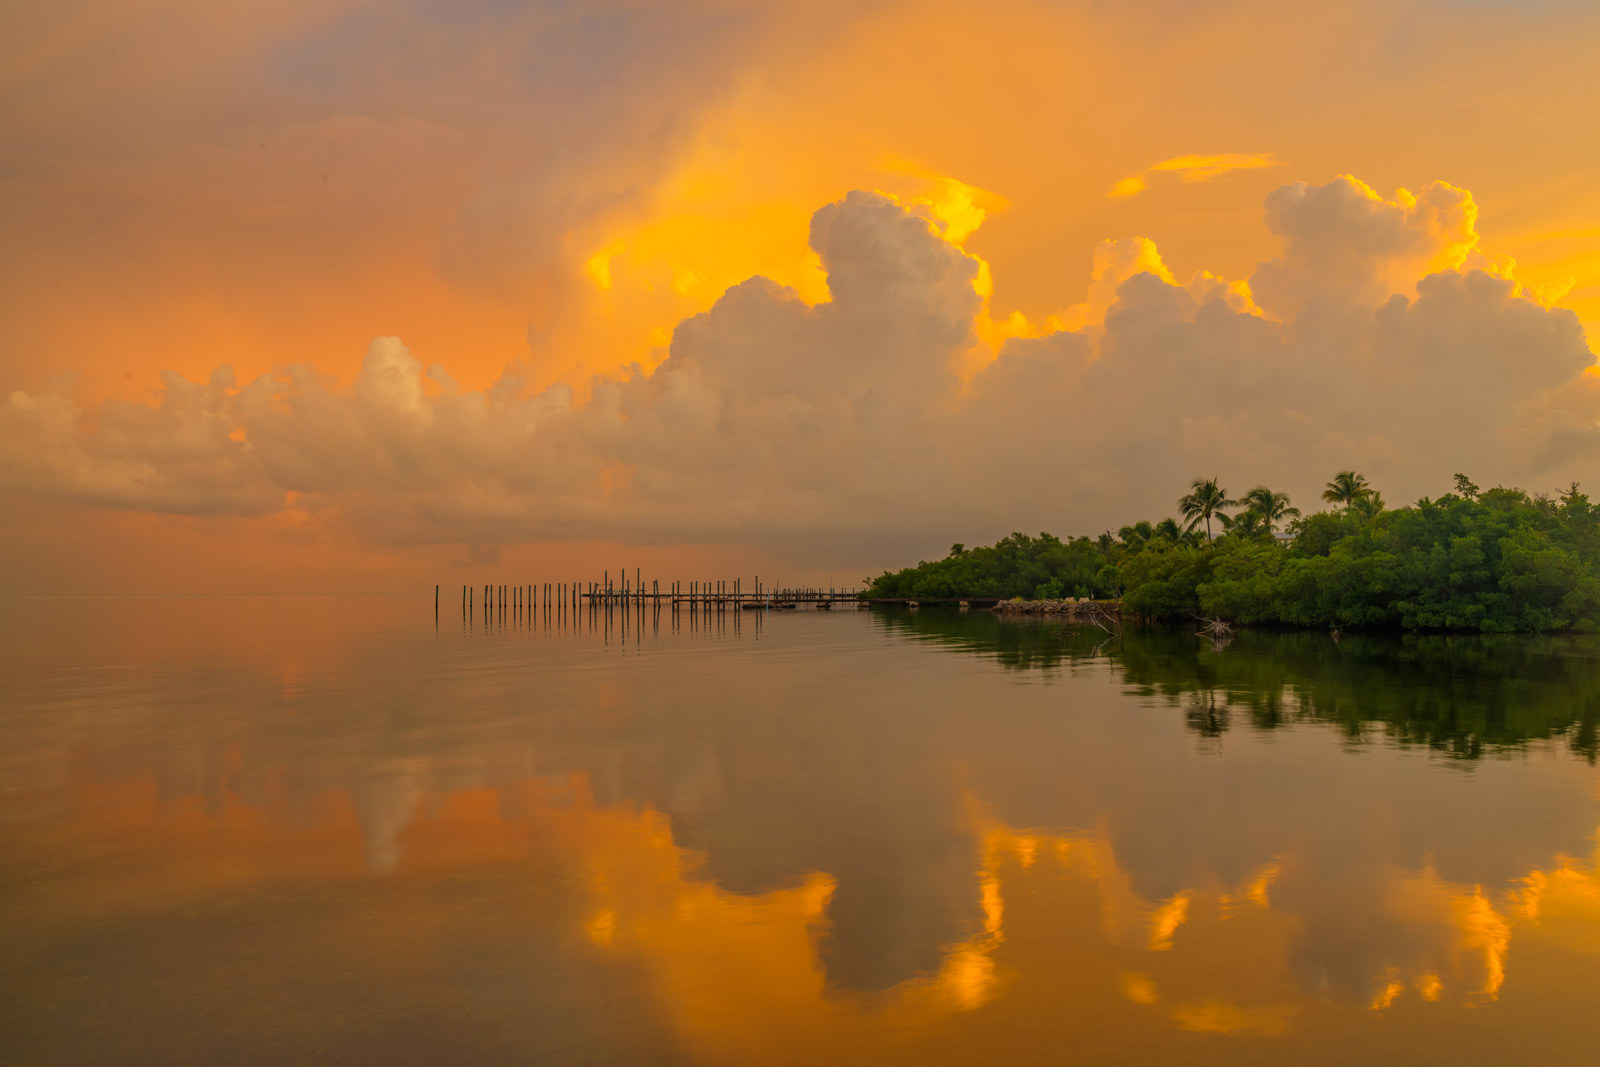 A Limited Edition, Fine Art photograph of sunrise over Florida Bay in the Florida Keys. Available as a Fine Art print, Metal...